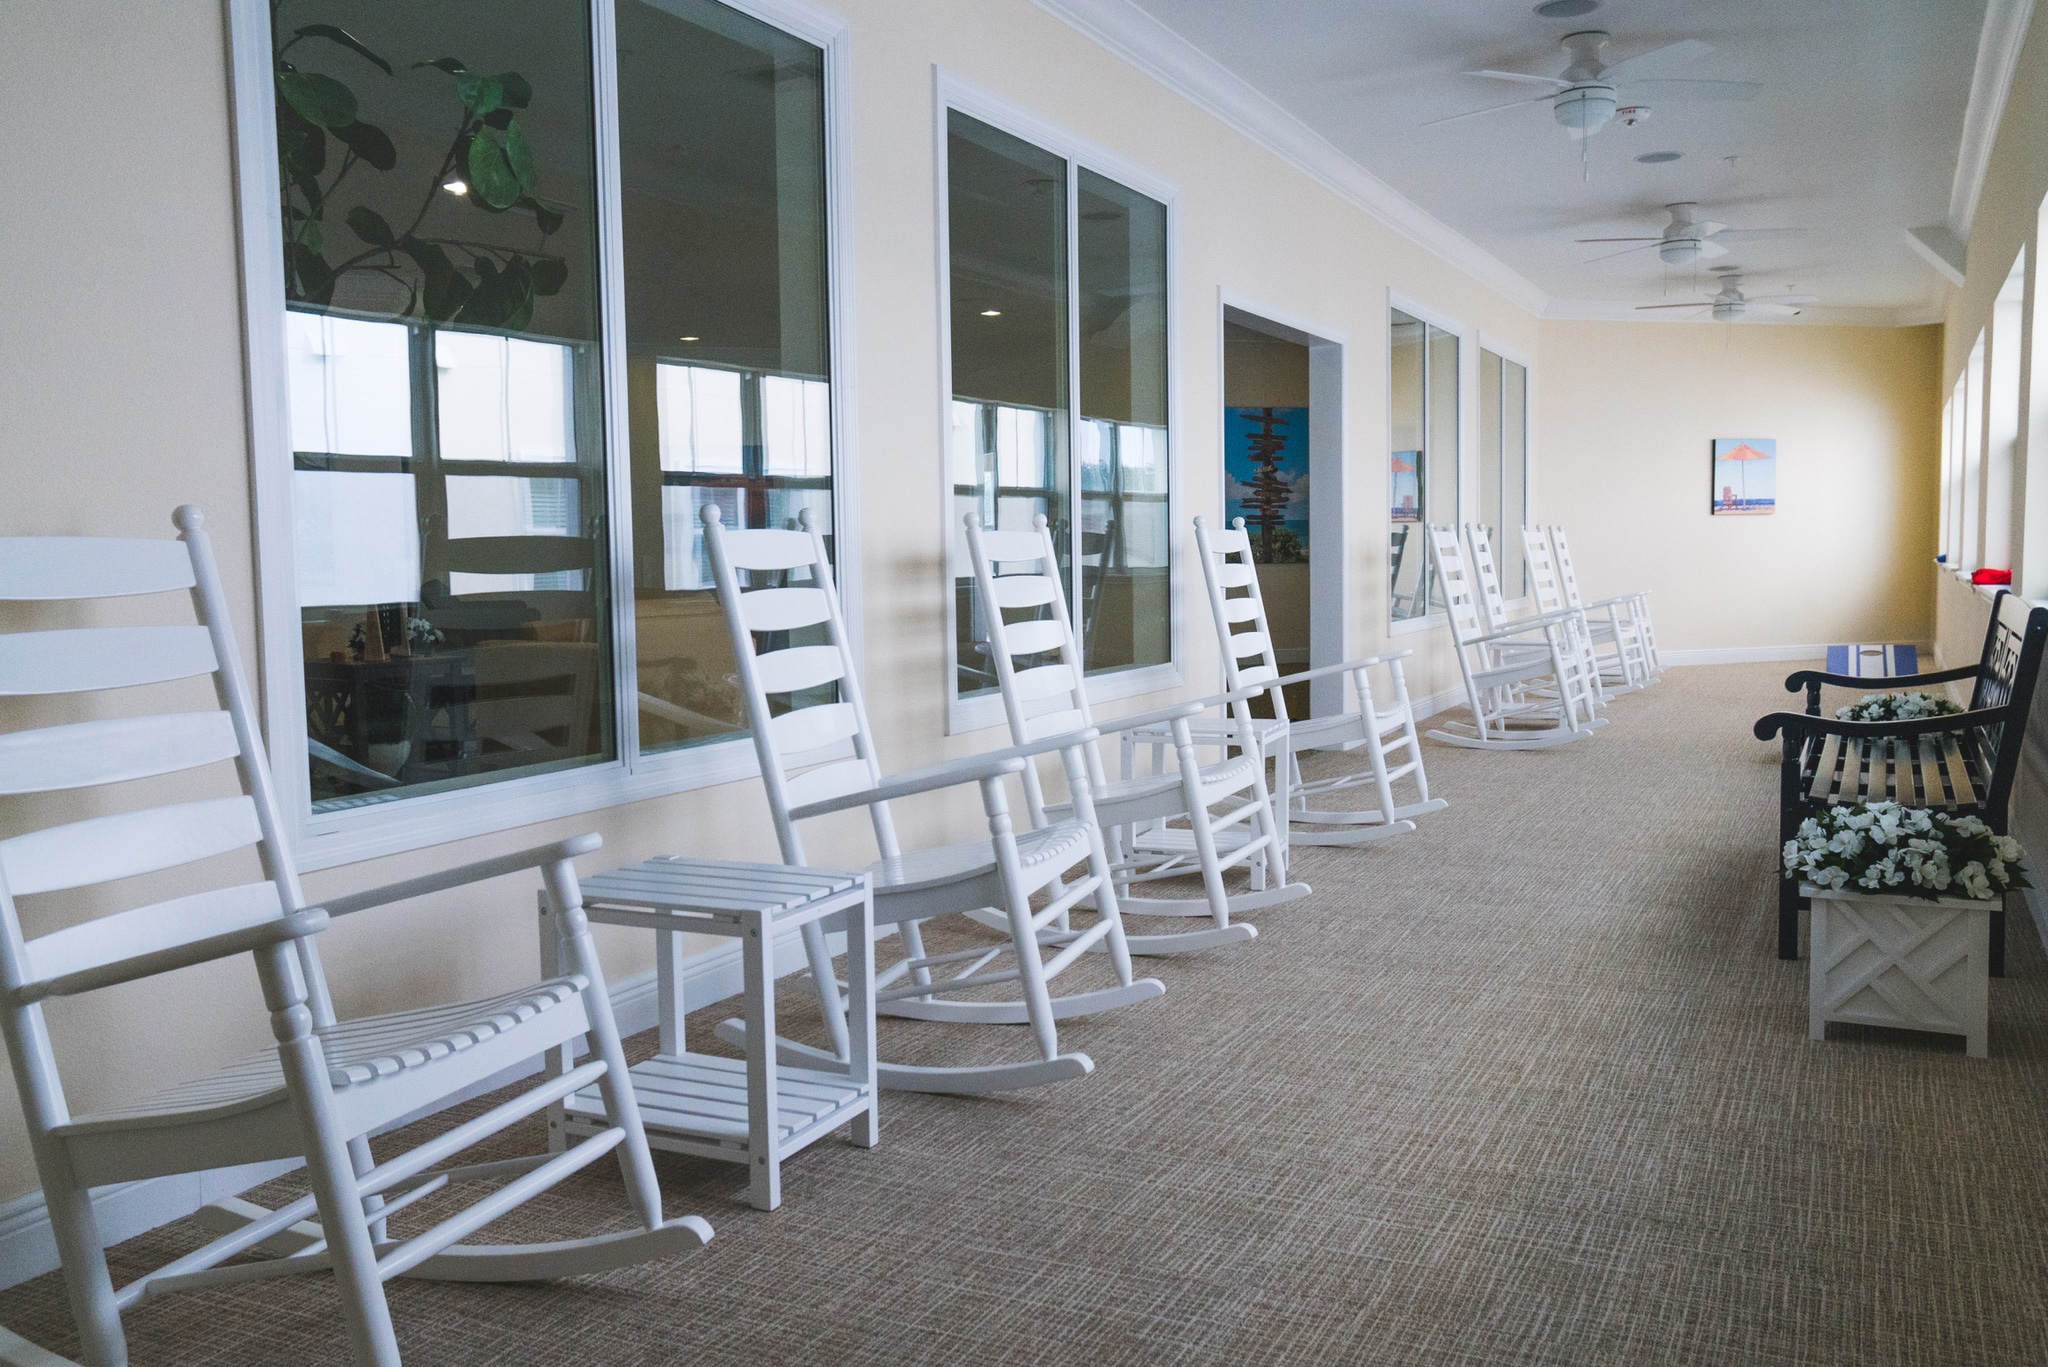 The sunroom at Angels Senior Living at Sarasota offers our seniors an opportunity to soak up the Florida sun.